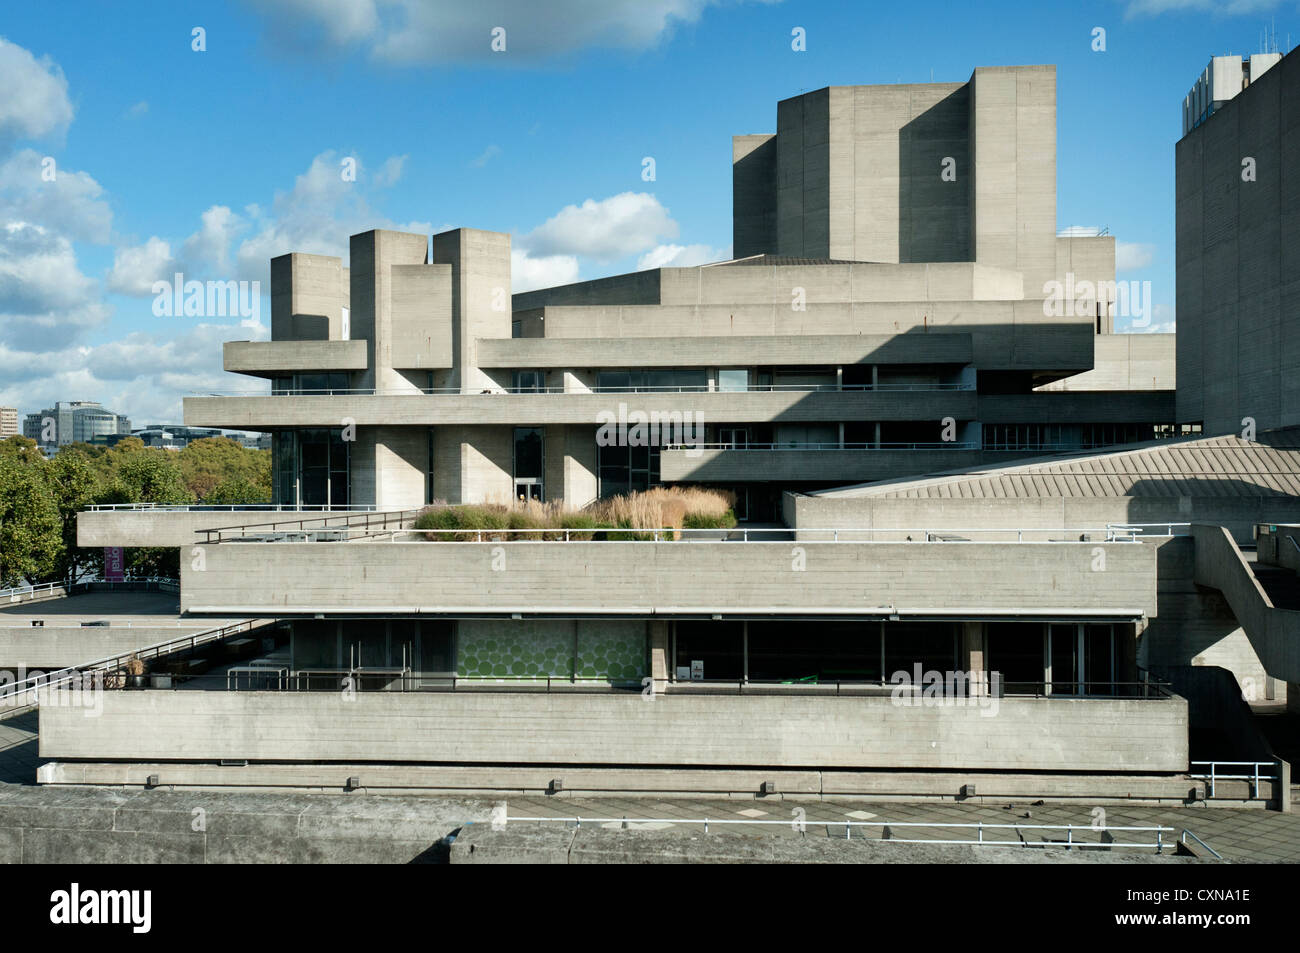 National Theatre, South Bank, London, UK, designed by Denys Lasdun, showing architecture - Stock Image